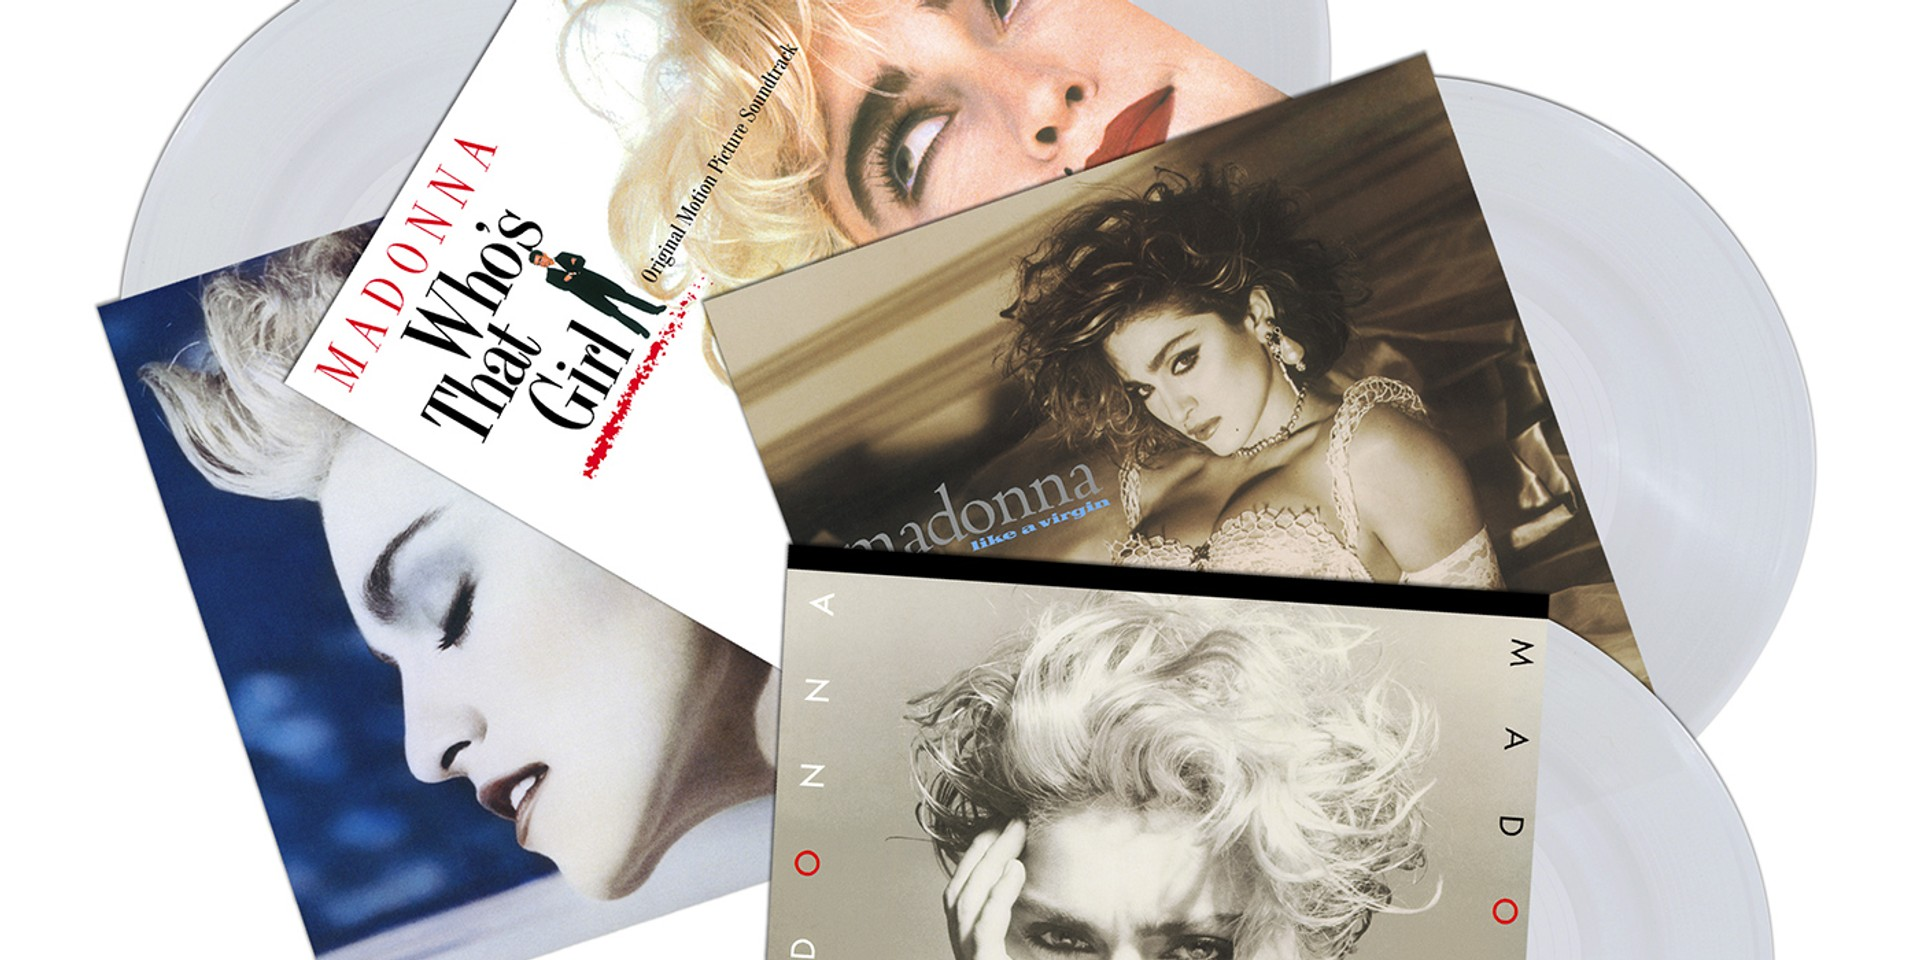 Madonna's first four albums set for release on crystal clear vinyl